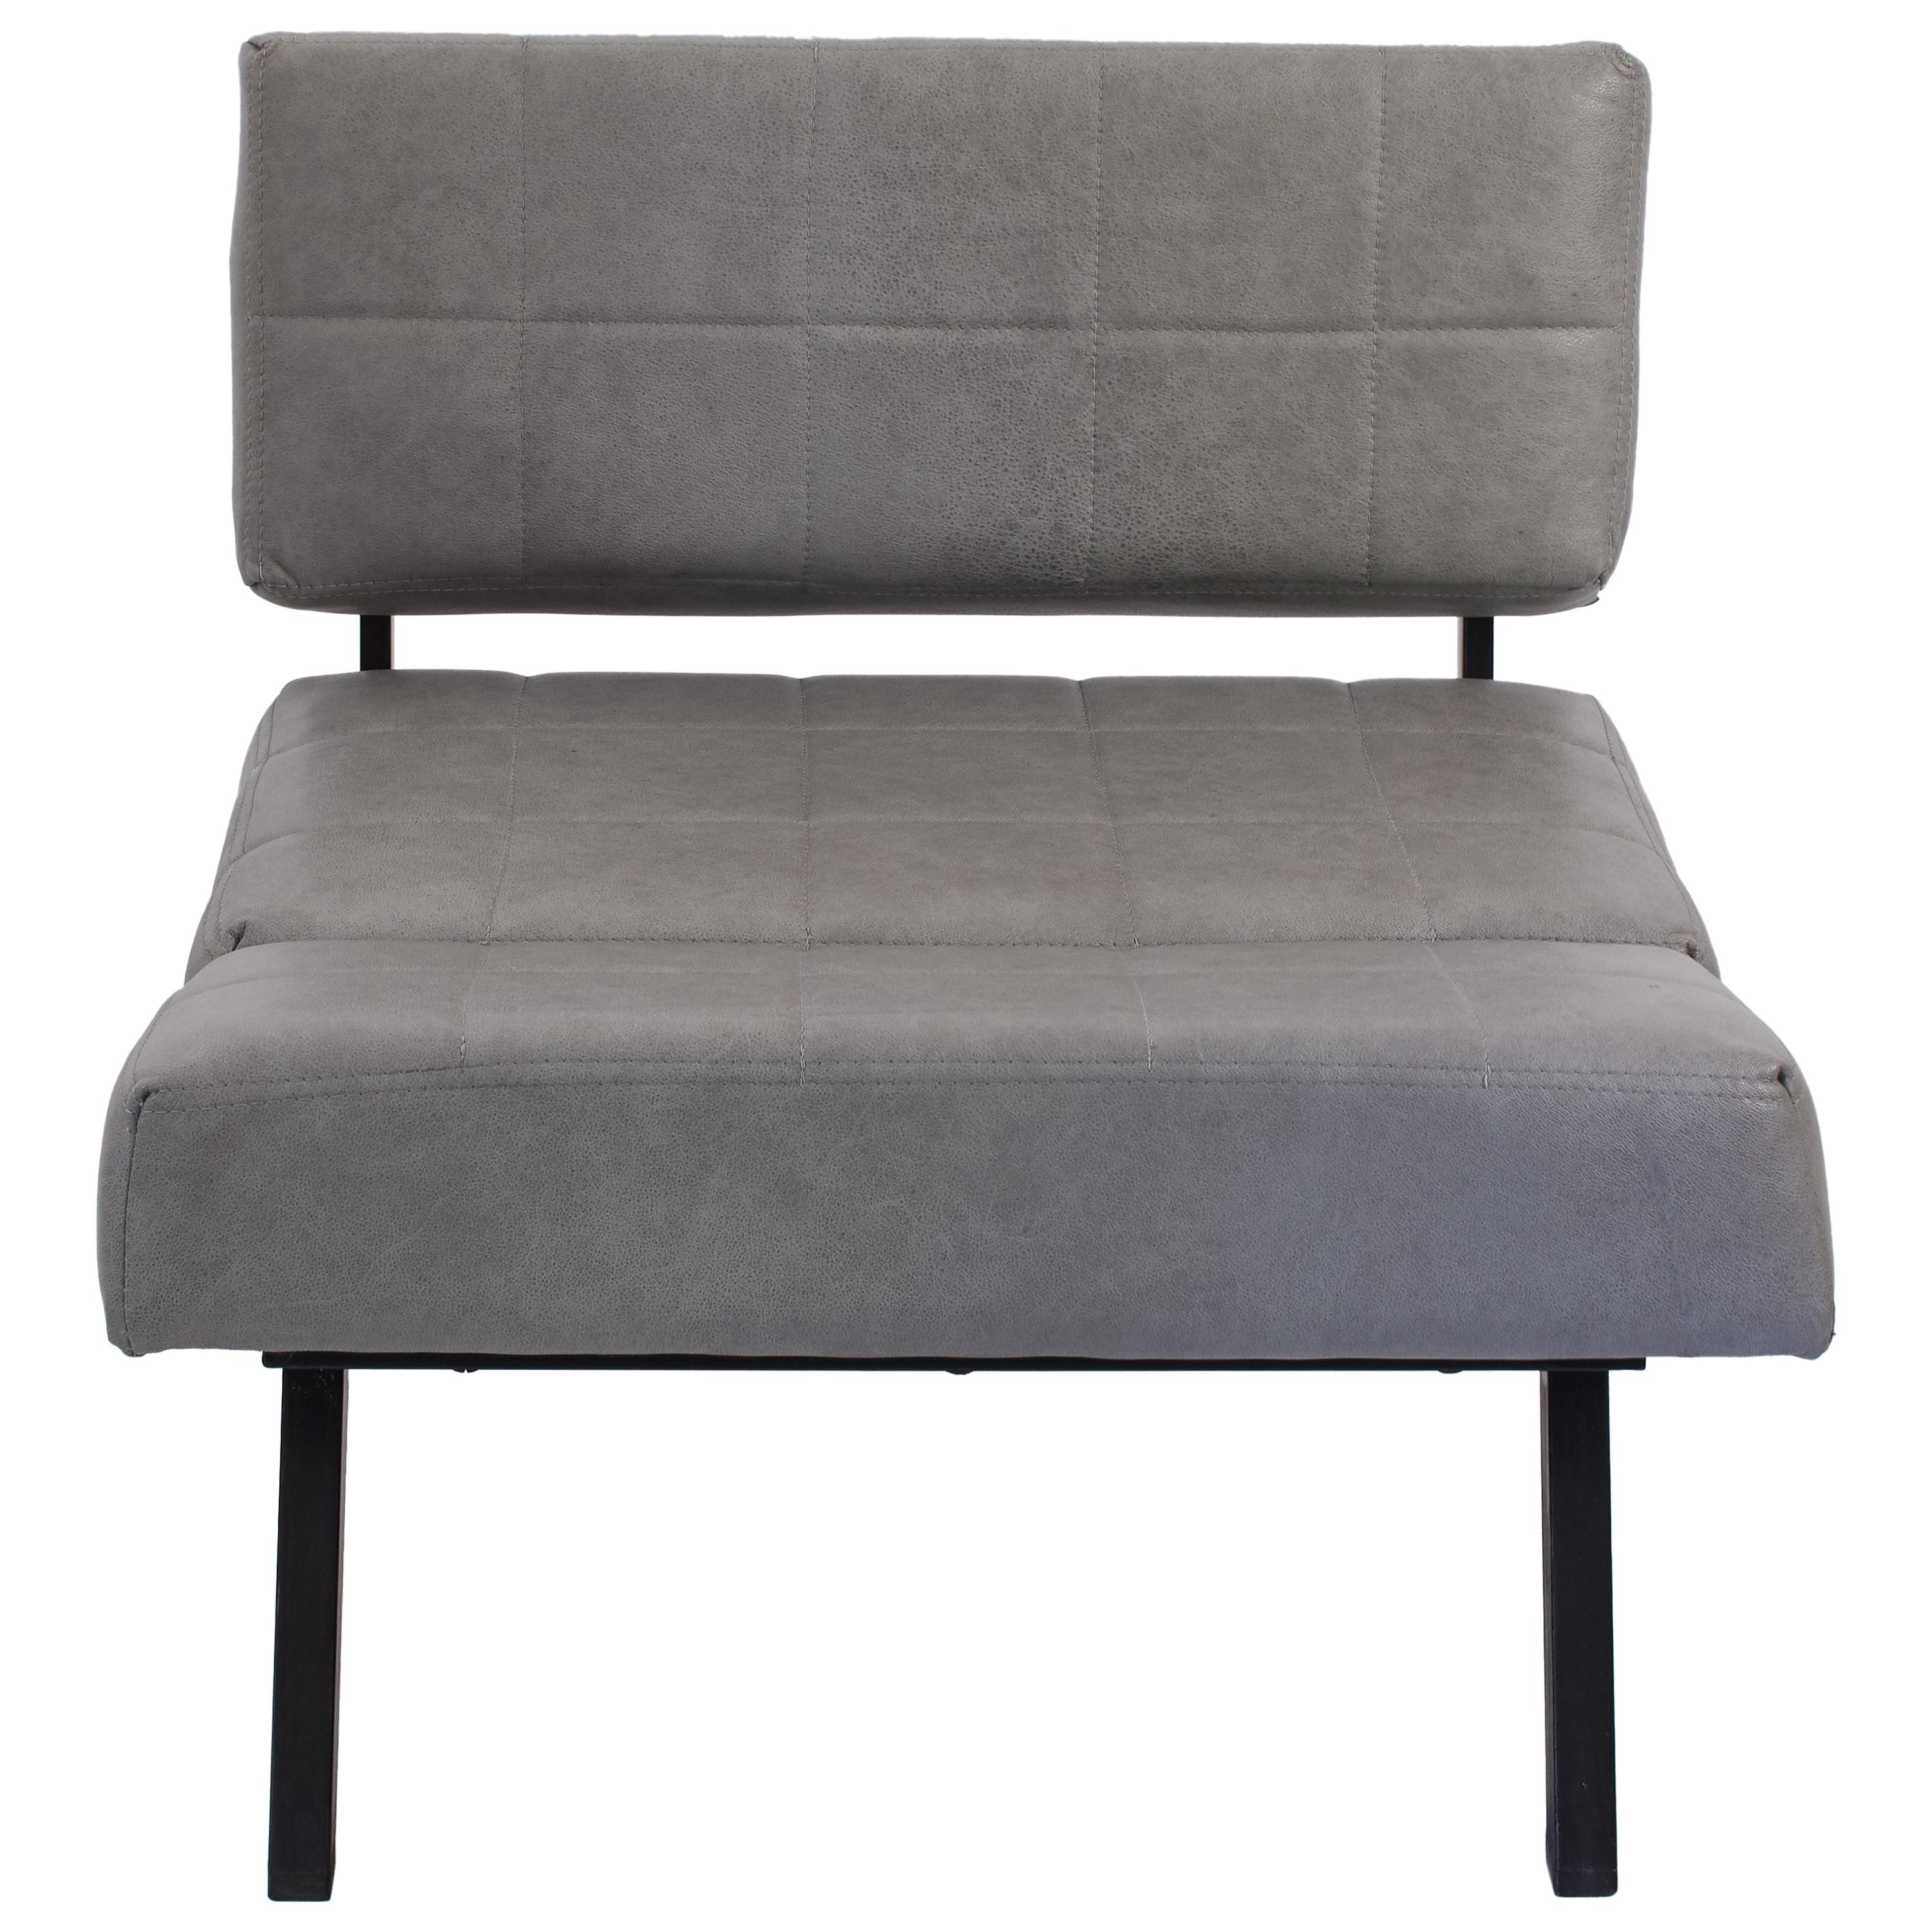 Bon 1970s Italian Pair Of Chairs Convertible To Bench In Grey Leather